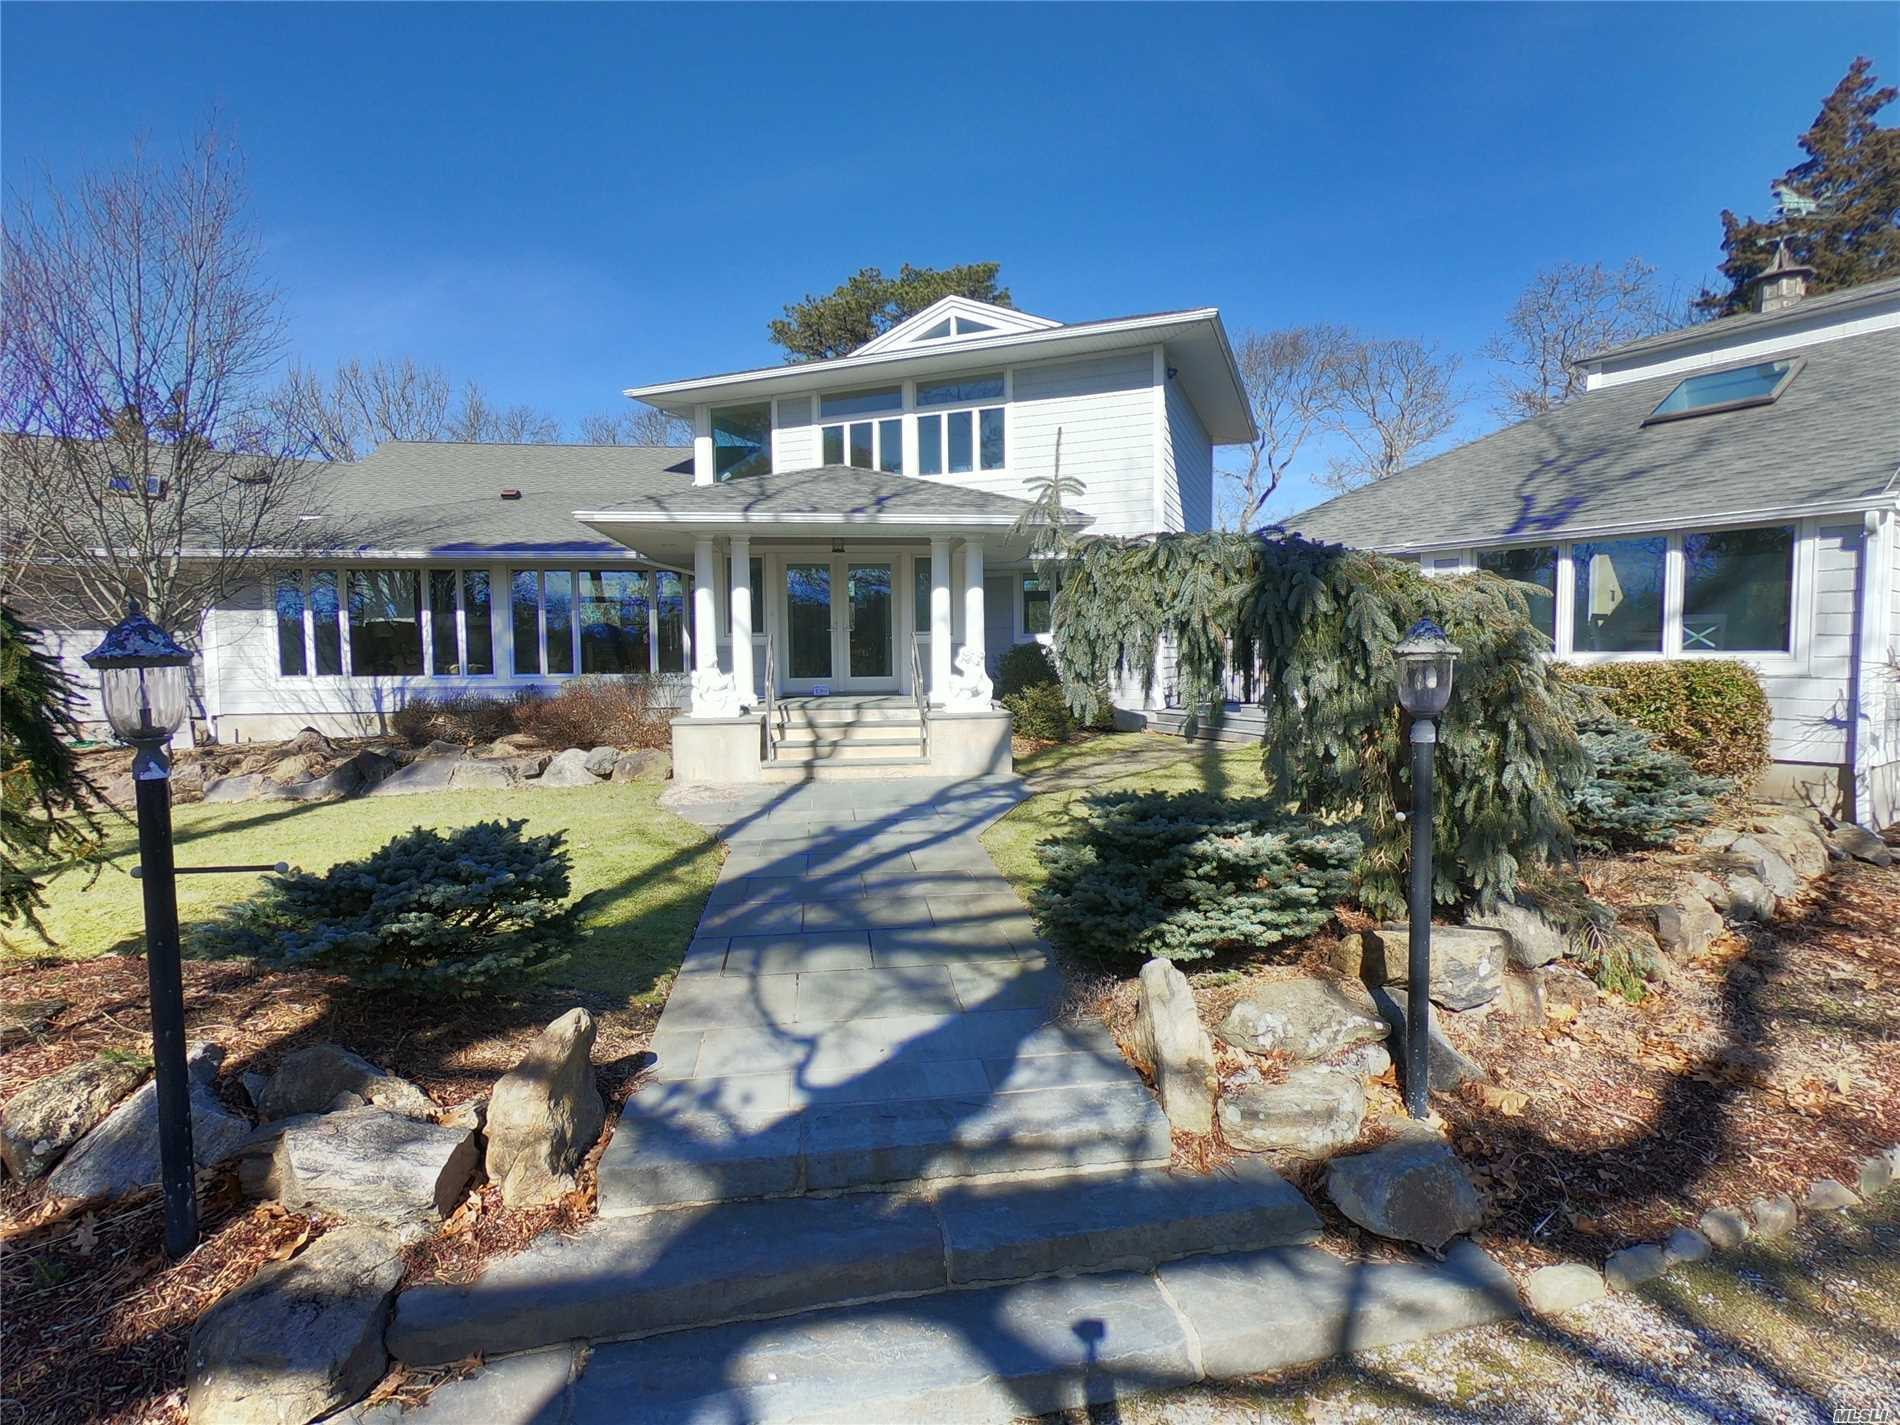 Photo of home for sale at 9 Duckwood Ln, Hampton Bays NY